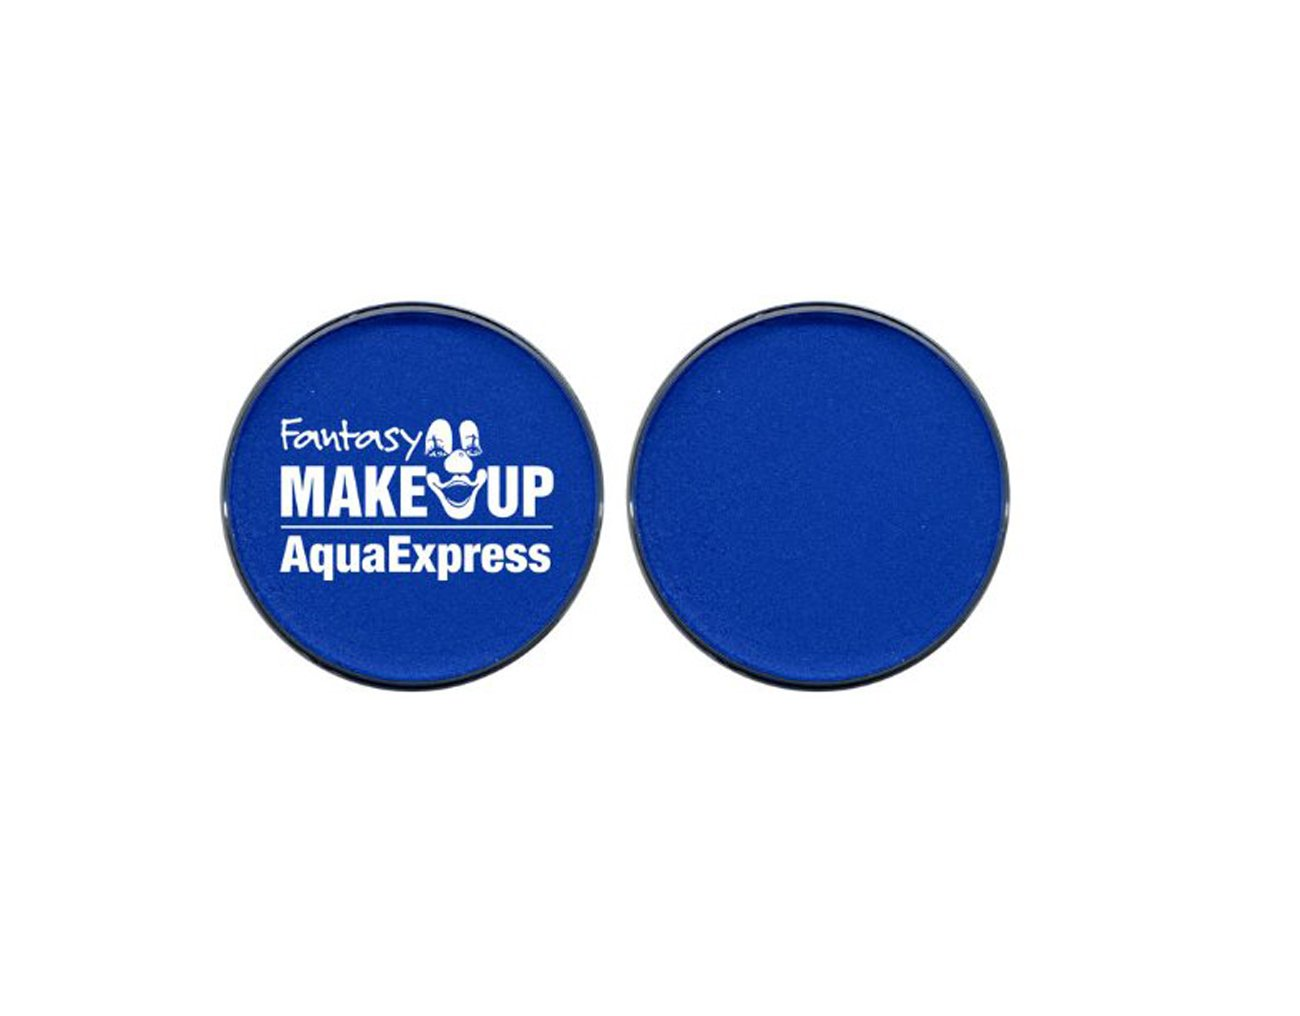 KREUL Fantasy Aqua Make Up Express, weiß, 1er Pack (1 x 15 g) weiß MU290